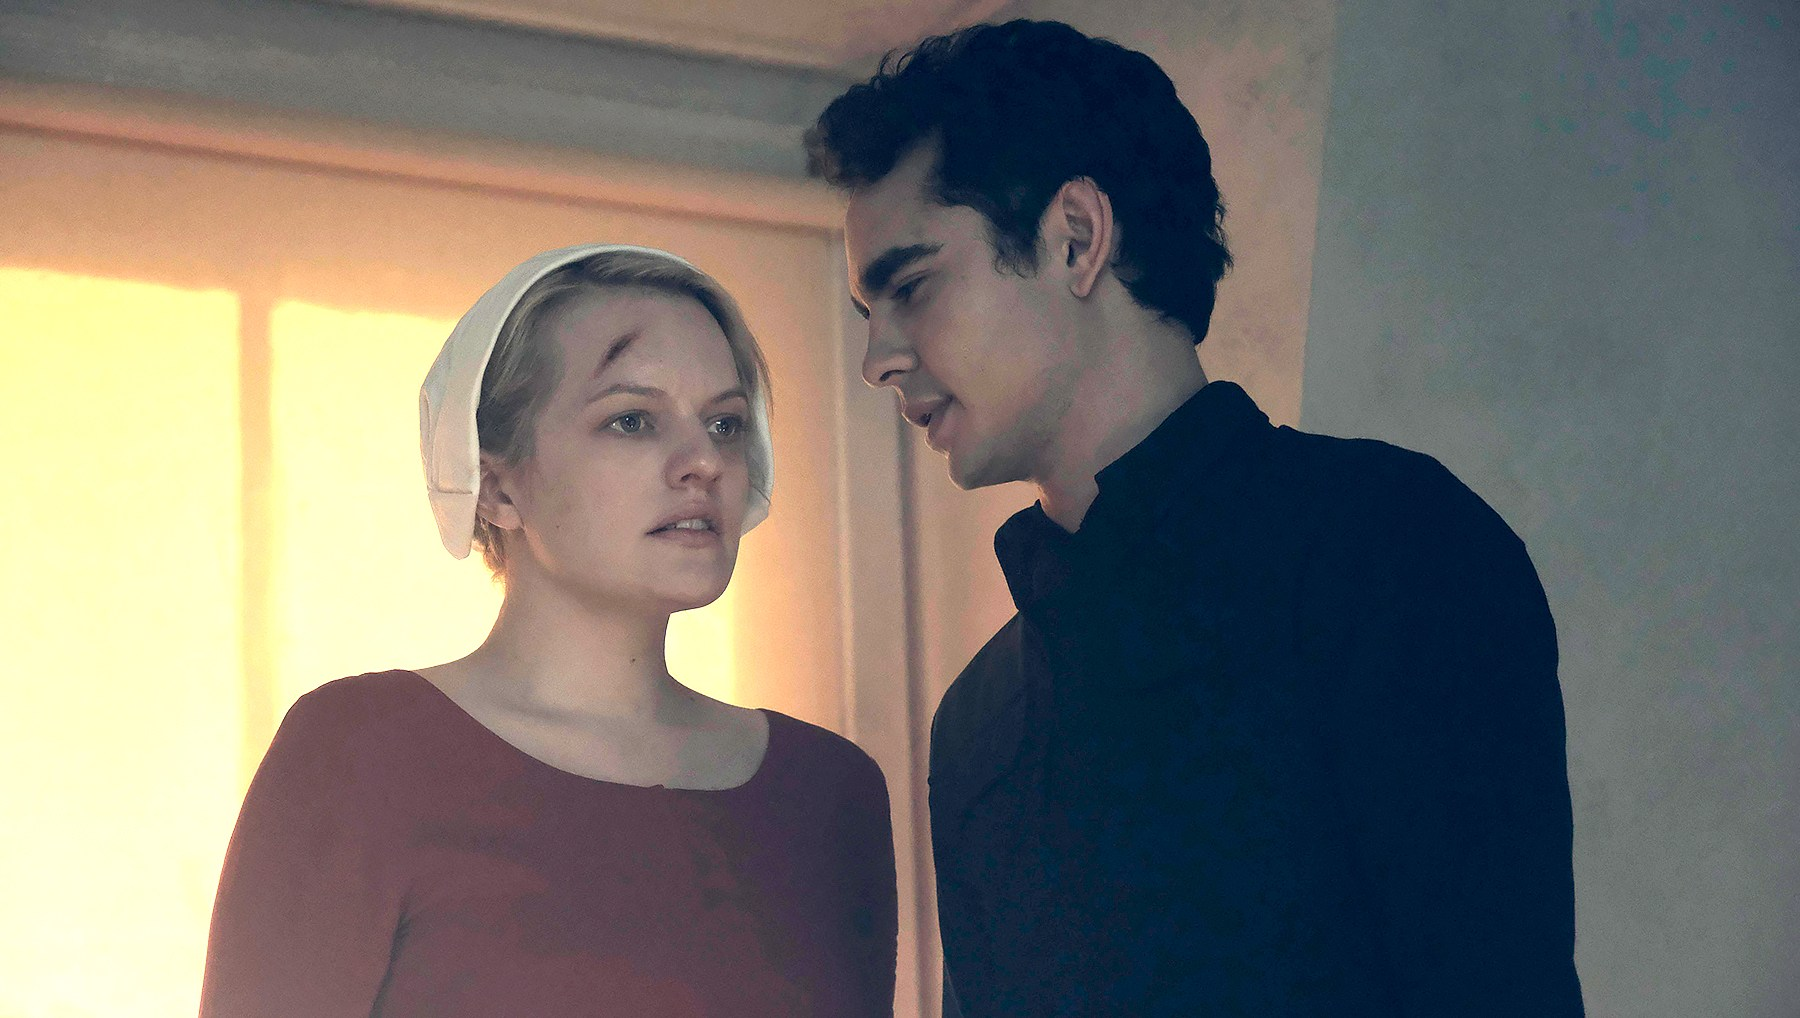 handmaids-tale-nick-and-offred